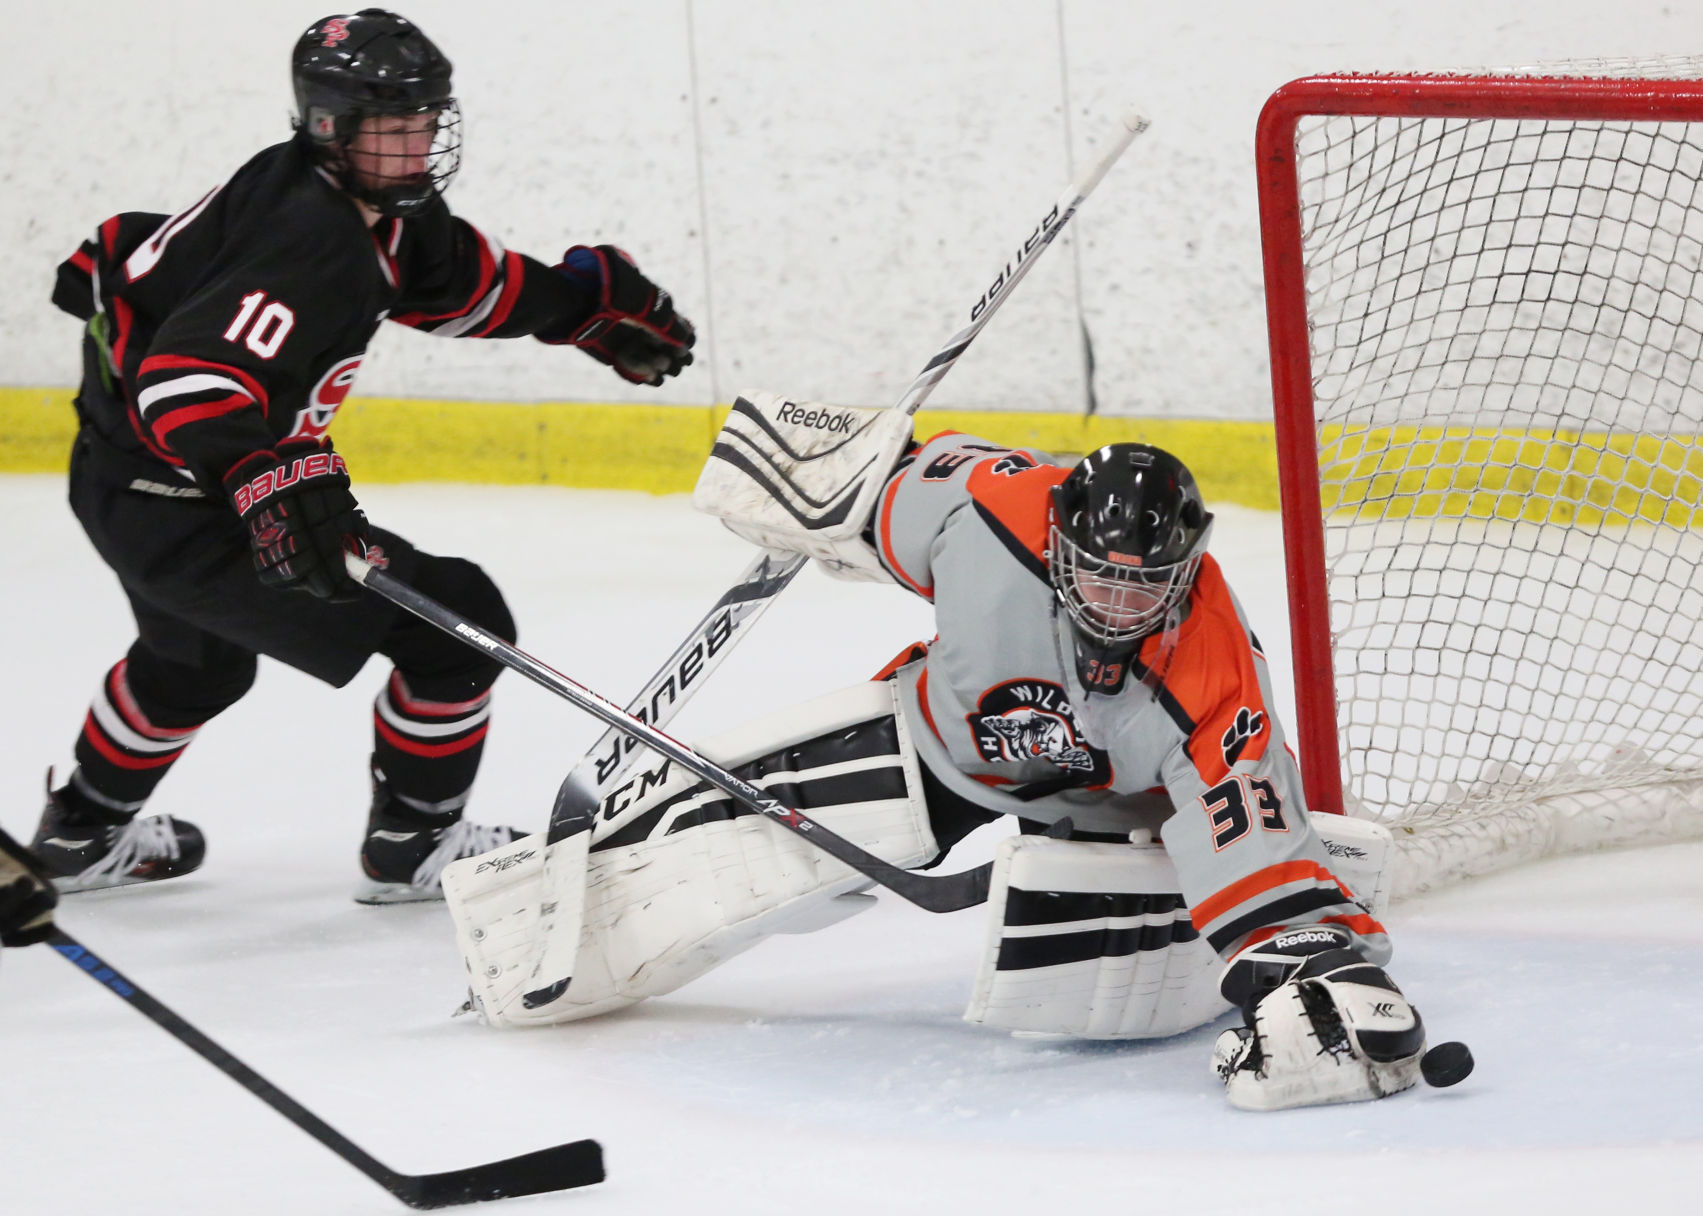 WI H.S.: Prep Boys Stevens Point's Cole Caufield Too Much For Verona In Opener